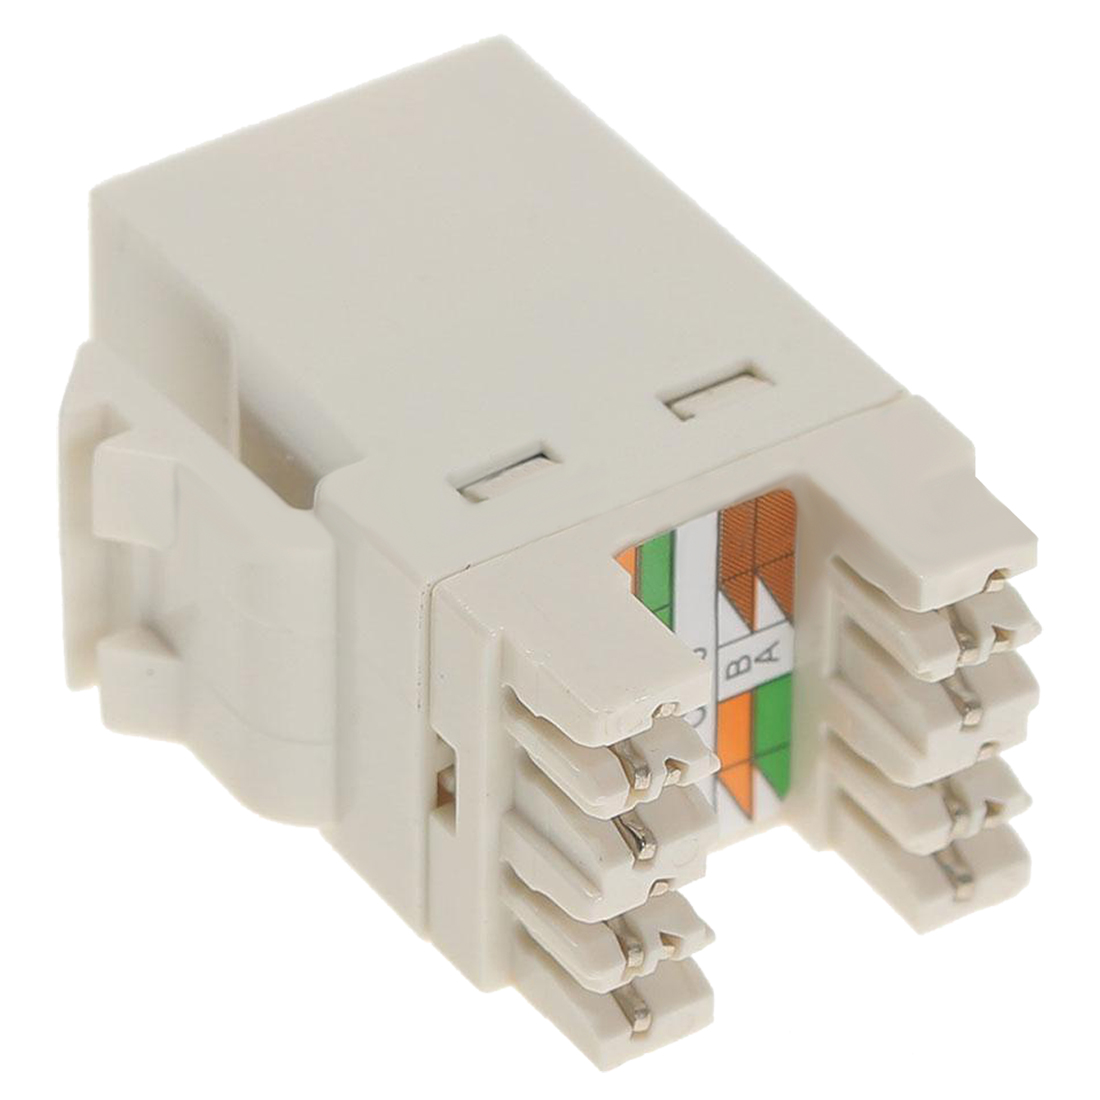 10pcs Cat 6 Rj45 8p8c Punchdown Keystone Modular Ethernet Snap In Jack Wiring Network Connectors From Lights Lighting On Alibaba Group